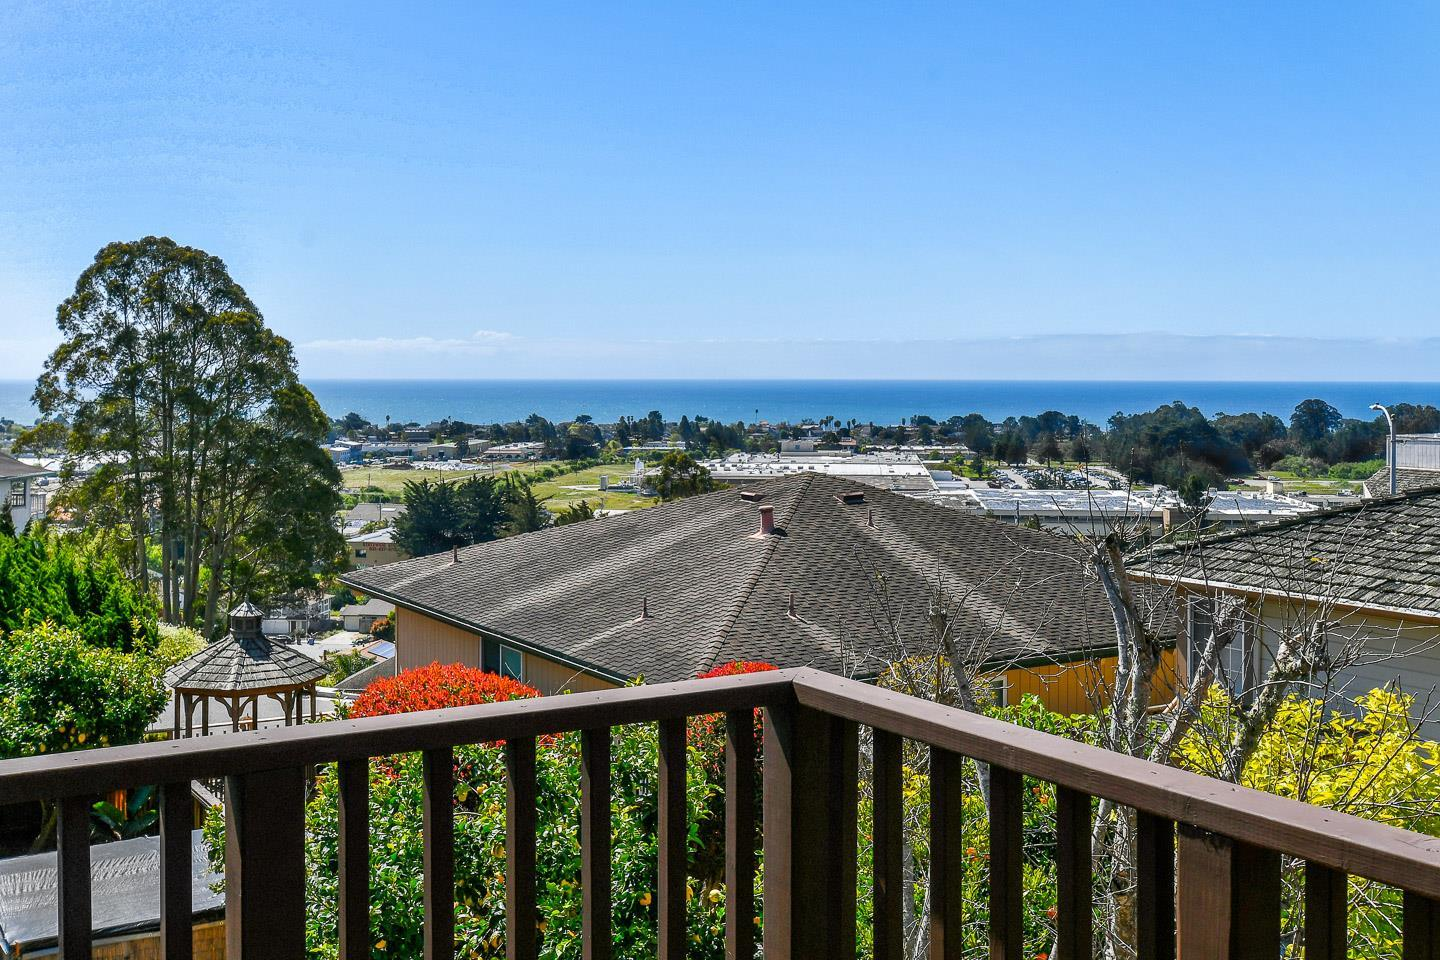 Fabulous ocean views from this sought after Upper Westside neighborhood. Walk out your front door to the Westside Farmers market and restaurants. Easy access to beaches and UCSC. This reverse floor plan home is designed to provide an ocean view from every single room upstairs, including the Master Bedroom!   With 4 spacious bedrooms and 3 full bathrooms, you'll find 2 bedrooms/2 bathrooms upstairs, and 2 bedrooms/ 1 bathroom downstairs.  Bright, airy, open and spacious and perfect for a large family. The huge living room flows into the dining room and kitchen  perfect for entertaining. Freshly painted interior & exterior, freshly resurfaced tubs and shower, and the upper decks have been replaced to take advantage of the views.  Full two-car garage, large inside laundry room, large closets and a built-in buffet provide loads of storage space.  Low maintenance yards with mature plants make this home ready to move in.  $481/Square foot for an Ocean View Westside Home. Don't miss this one!